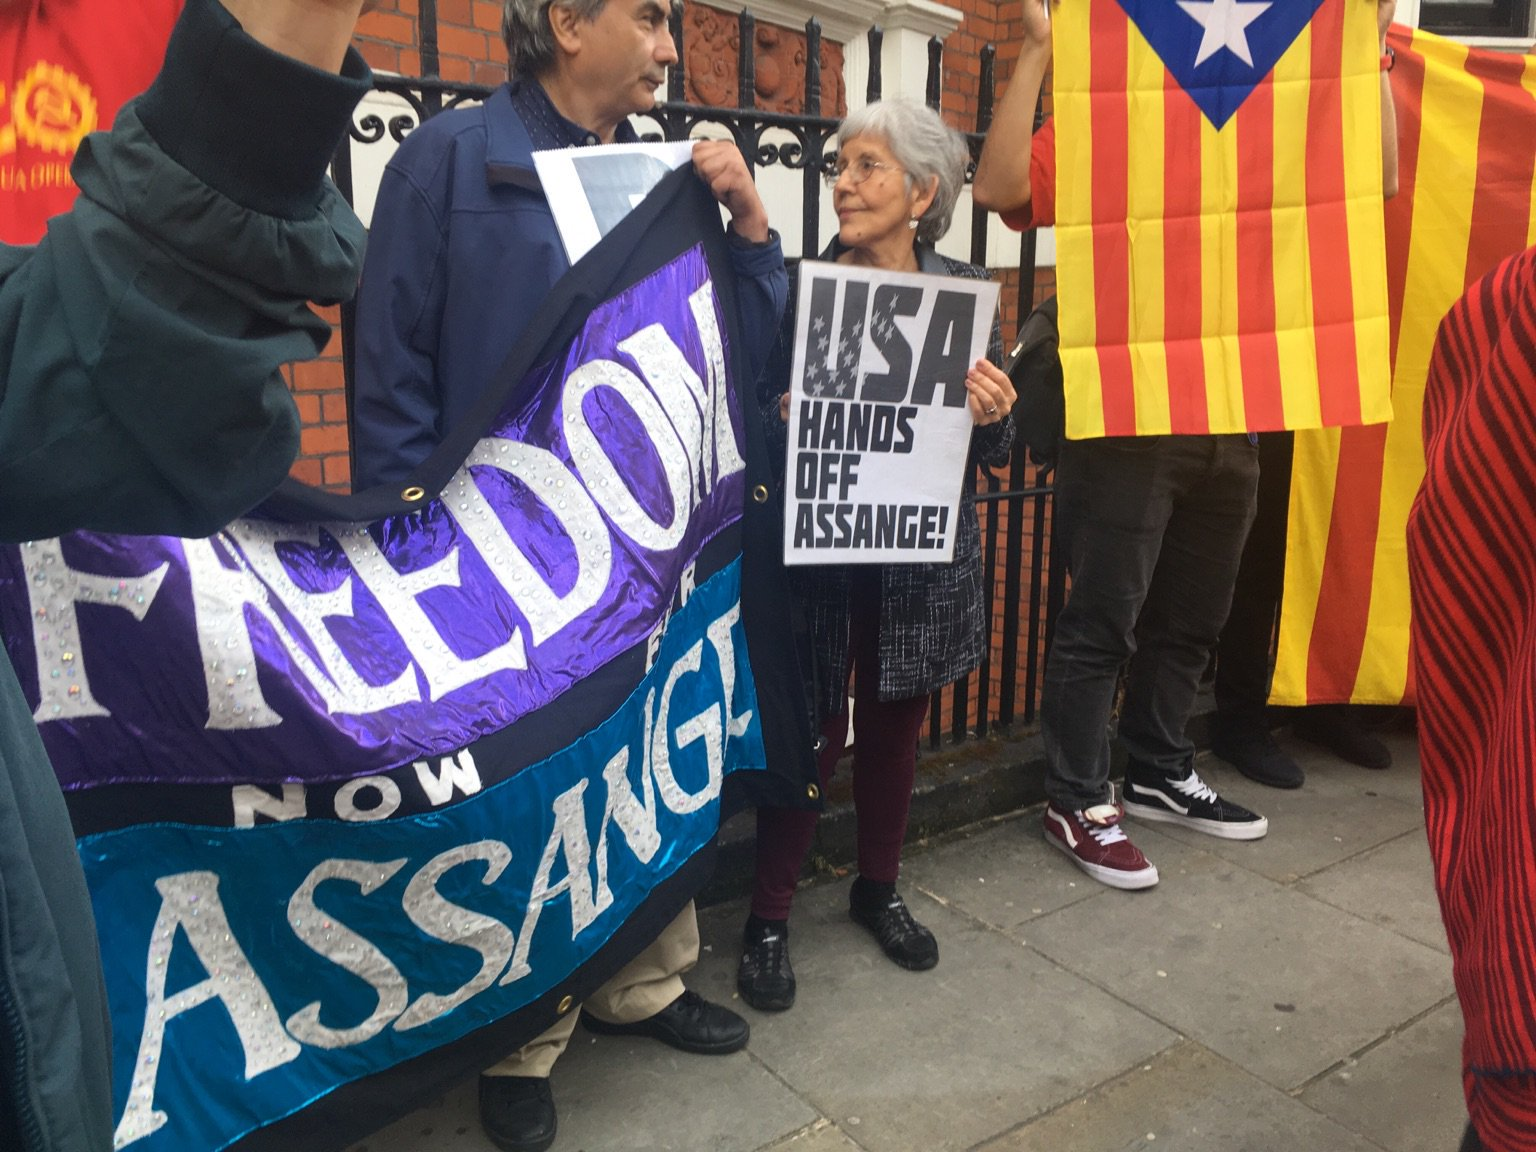 candles4assange:-catalans-celebrate-wikileaks-founder-julian-assange's-birthday;-march-for-own-freedom